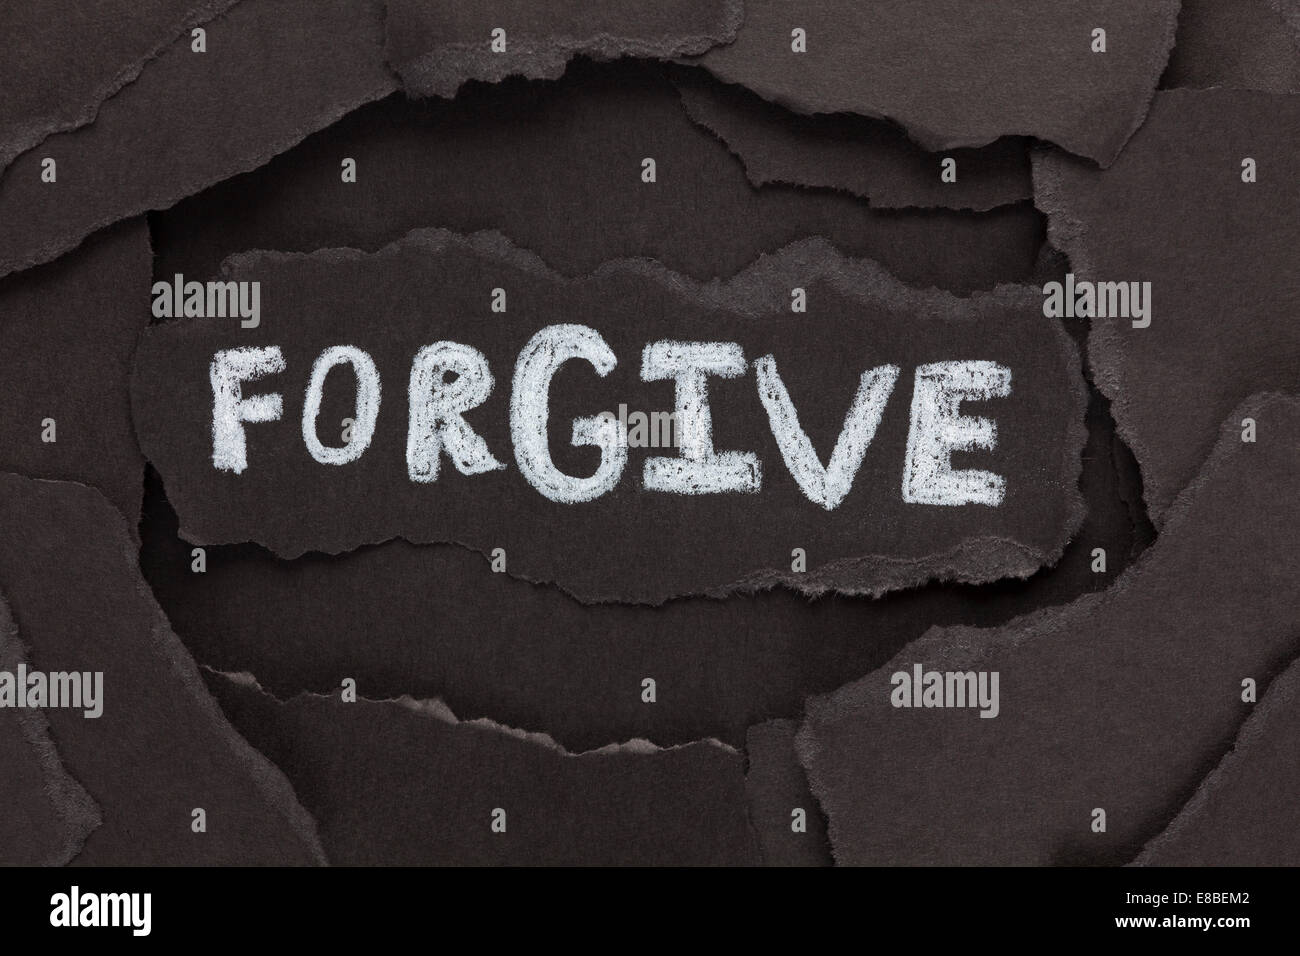 Forgive. Torn pieces of black paper and the word 'Forgive'. Close-up. - Stock Image